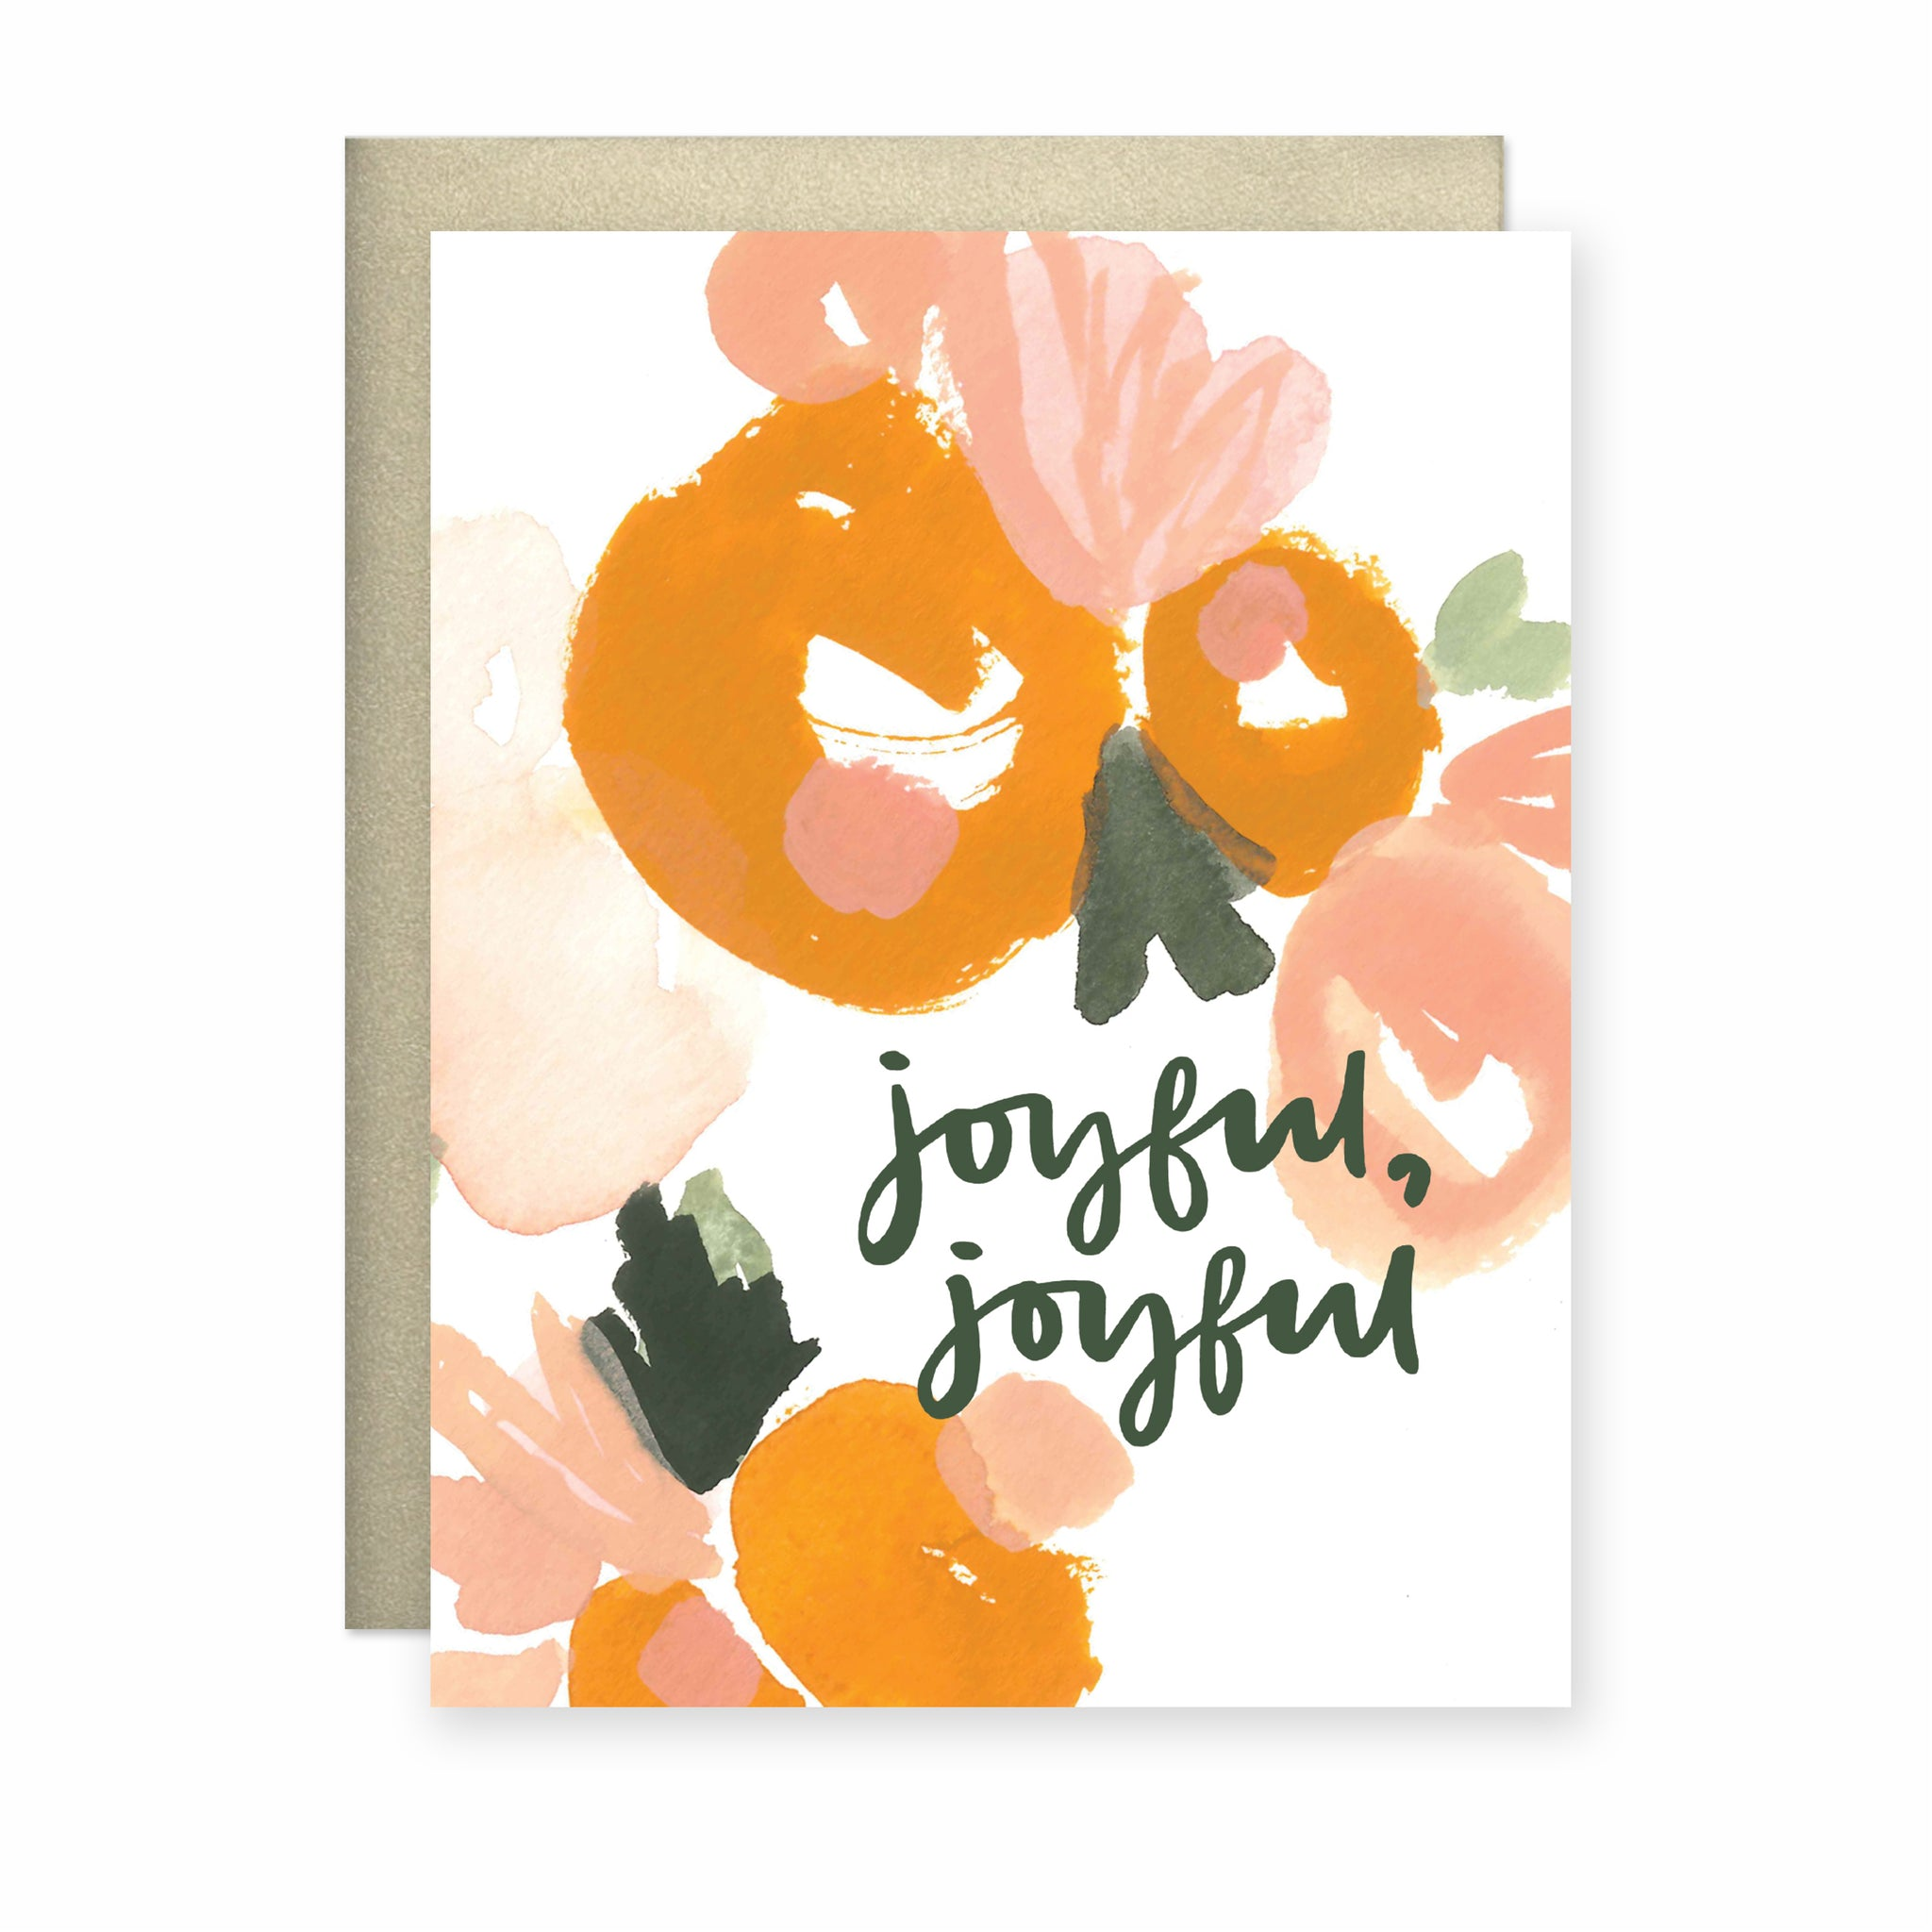 Joyful, Joyful Card